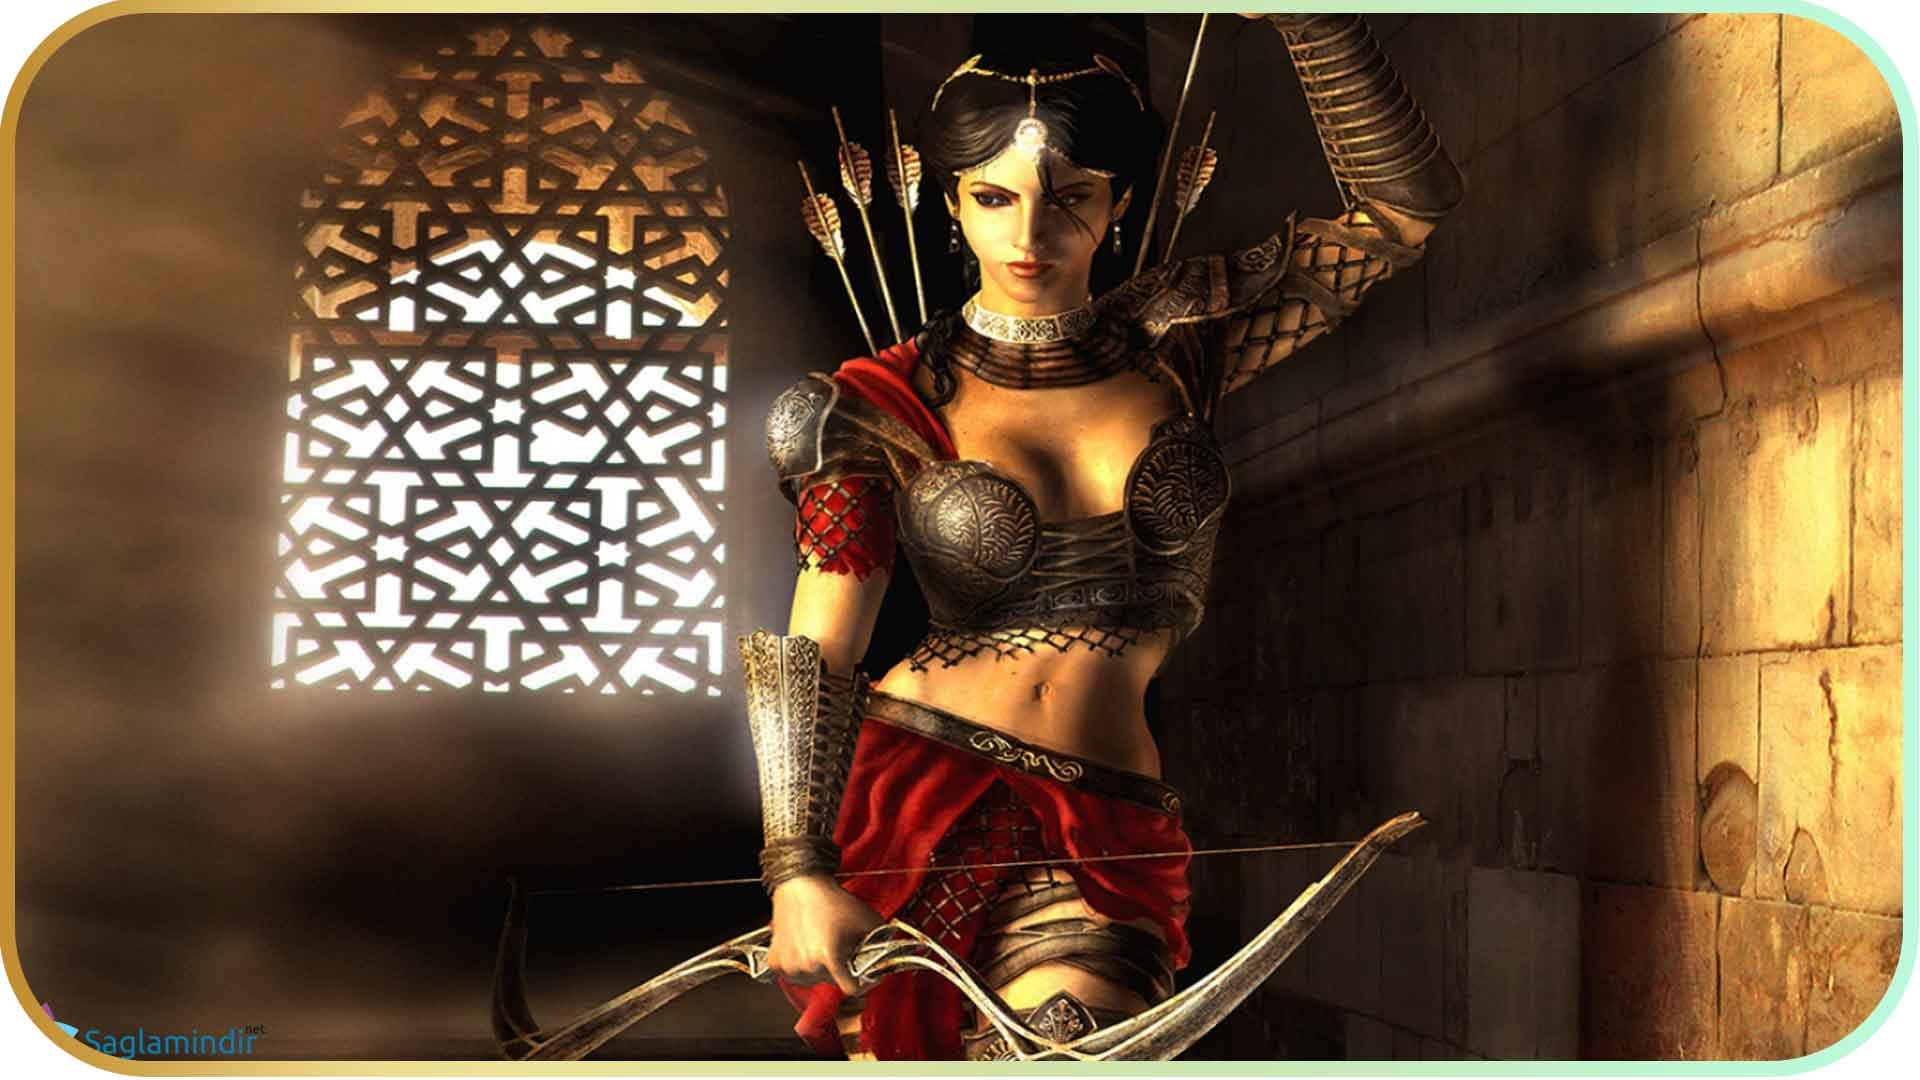 Prince of Persia The Two Thrones saglamindir